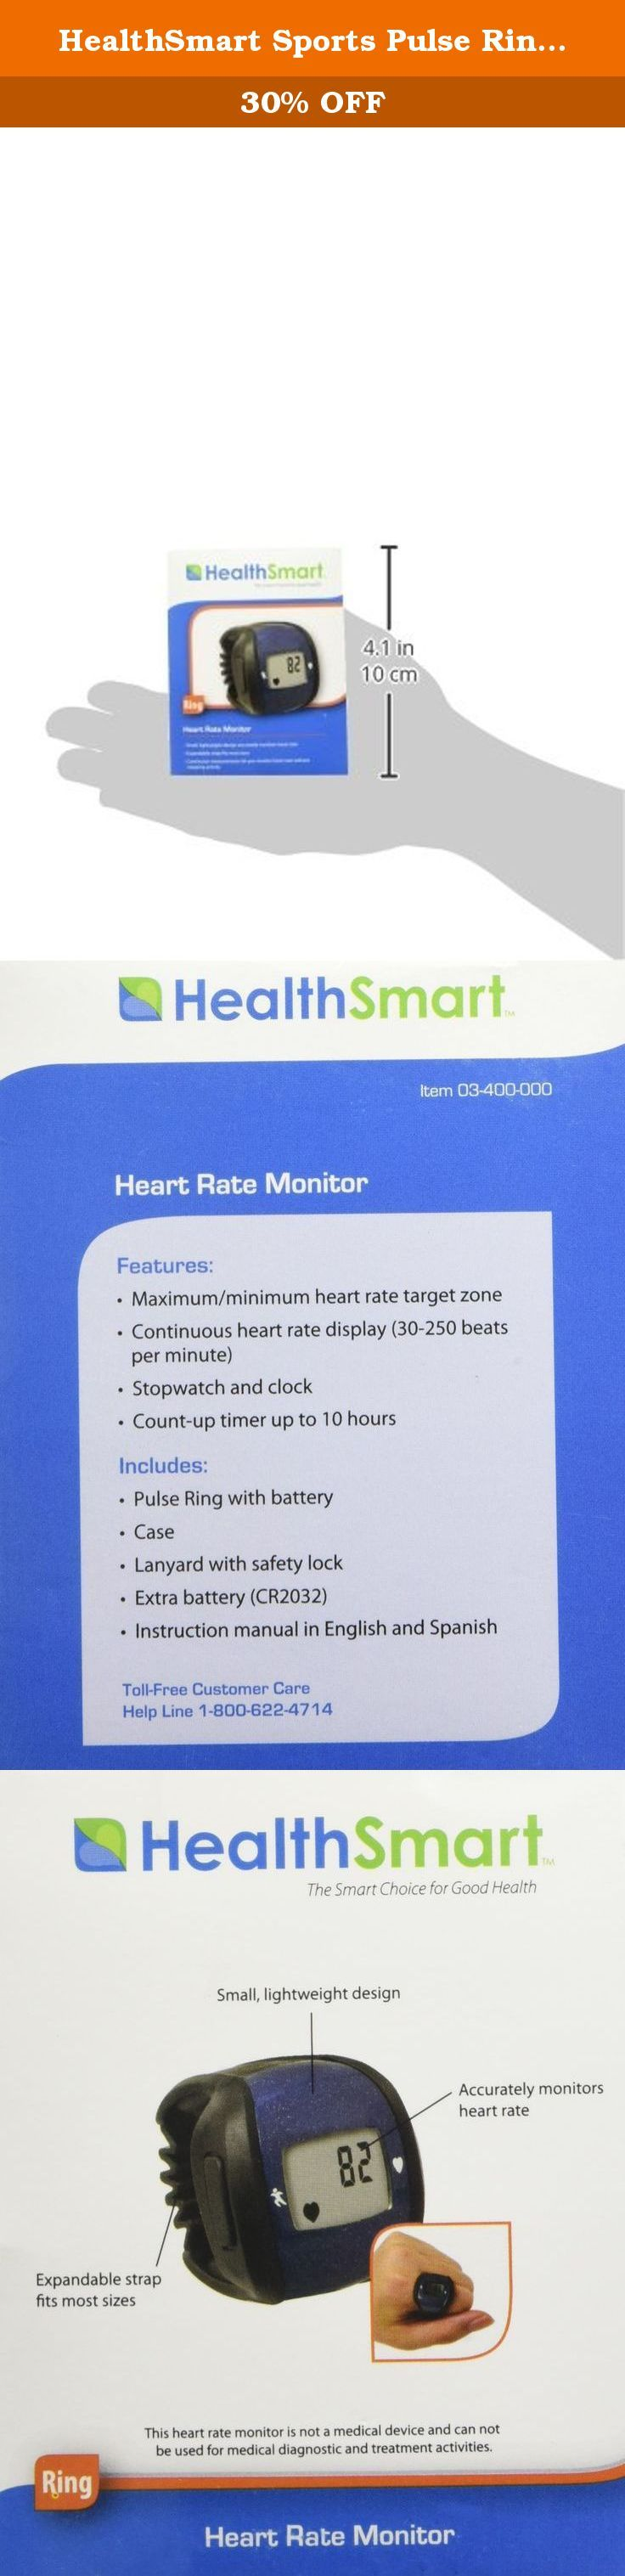 HealthSmart Sports Pulse Ring Heart Rate Monitor, Blue. Monitor Your Heart Rate During Sports or Exercise This small, lightweight ring makes it easy to monitor your heart rate while on the go, at the gym or taking your morning run. Just slip it on your finger to get a continuous heart rate display without stopping your activity. It also has a stopwatch, clock and count-up timer. The monitor comes with a lanyard with safety lock, an extra battery and instructions in English and Spanish....